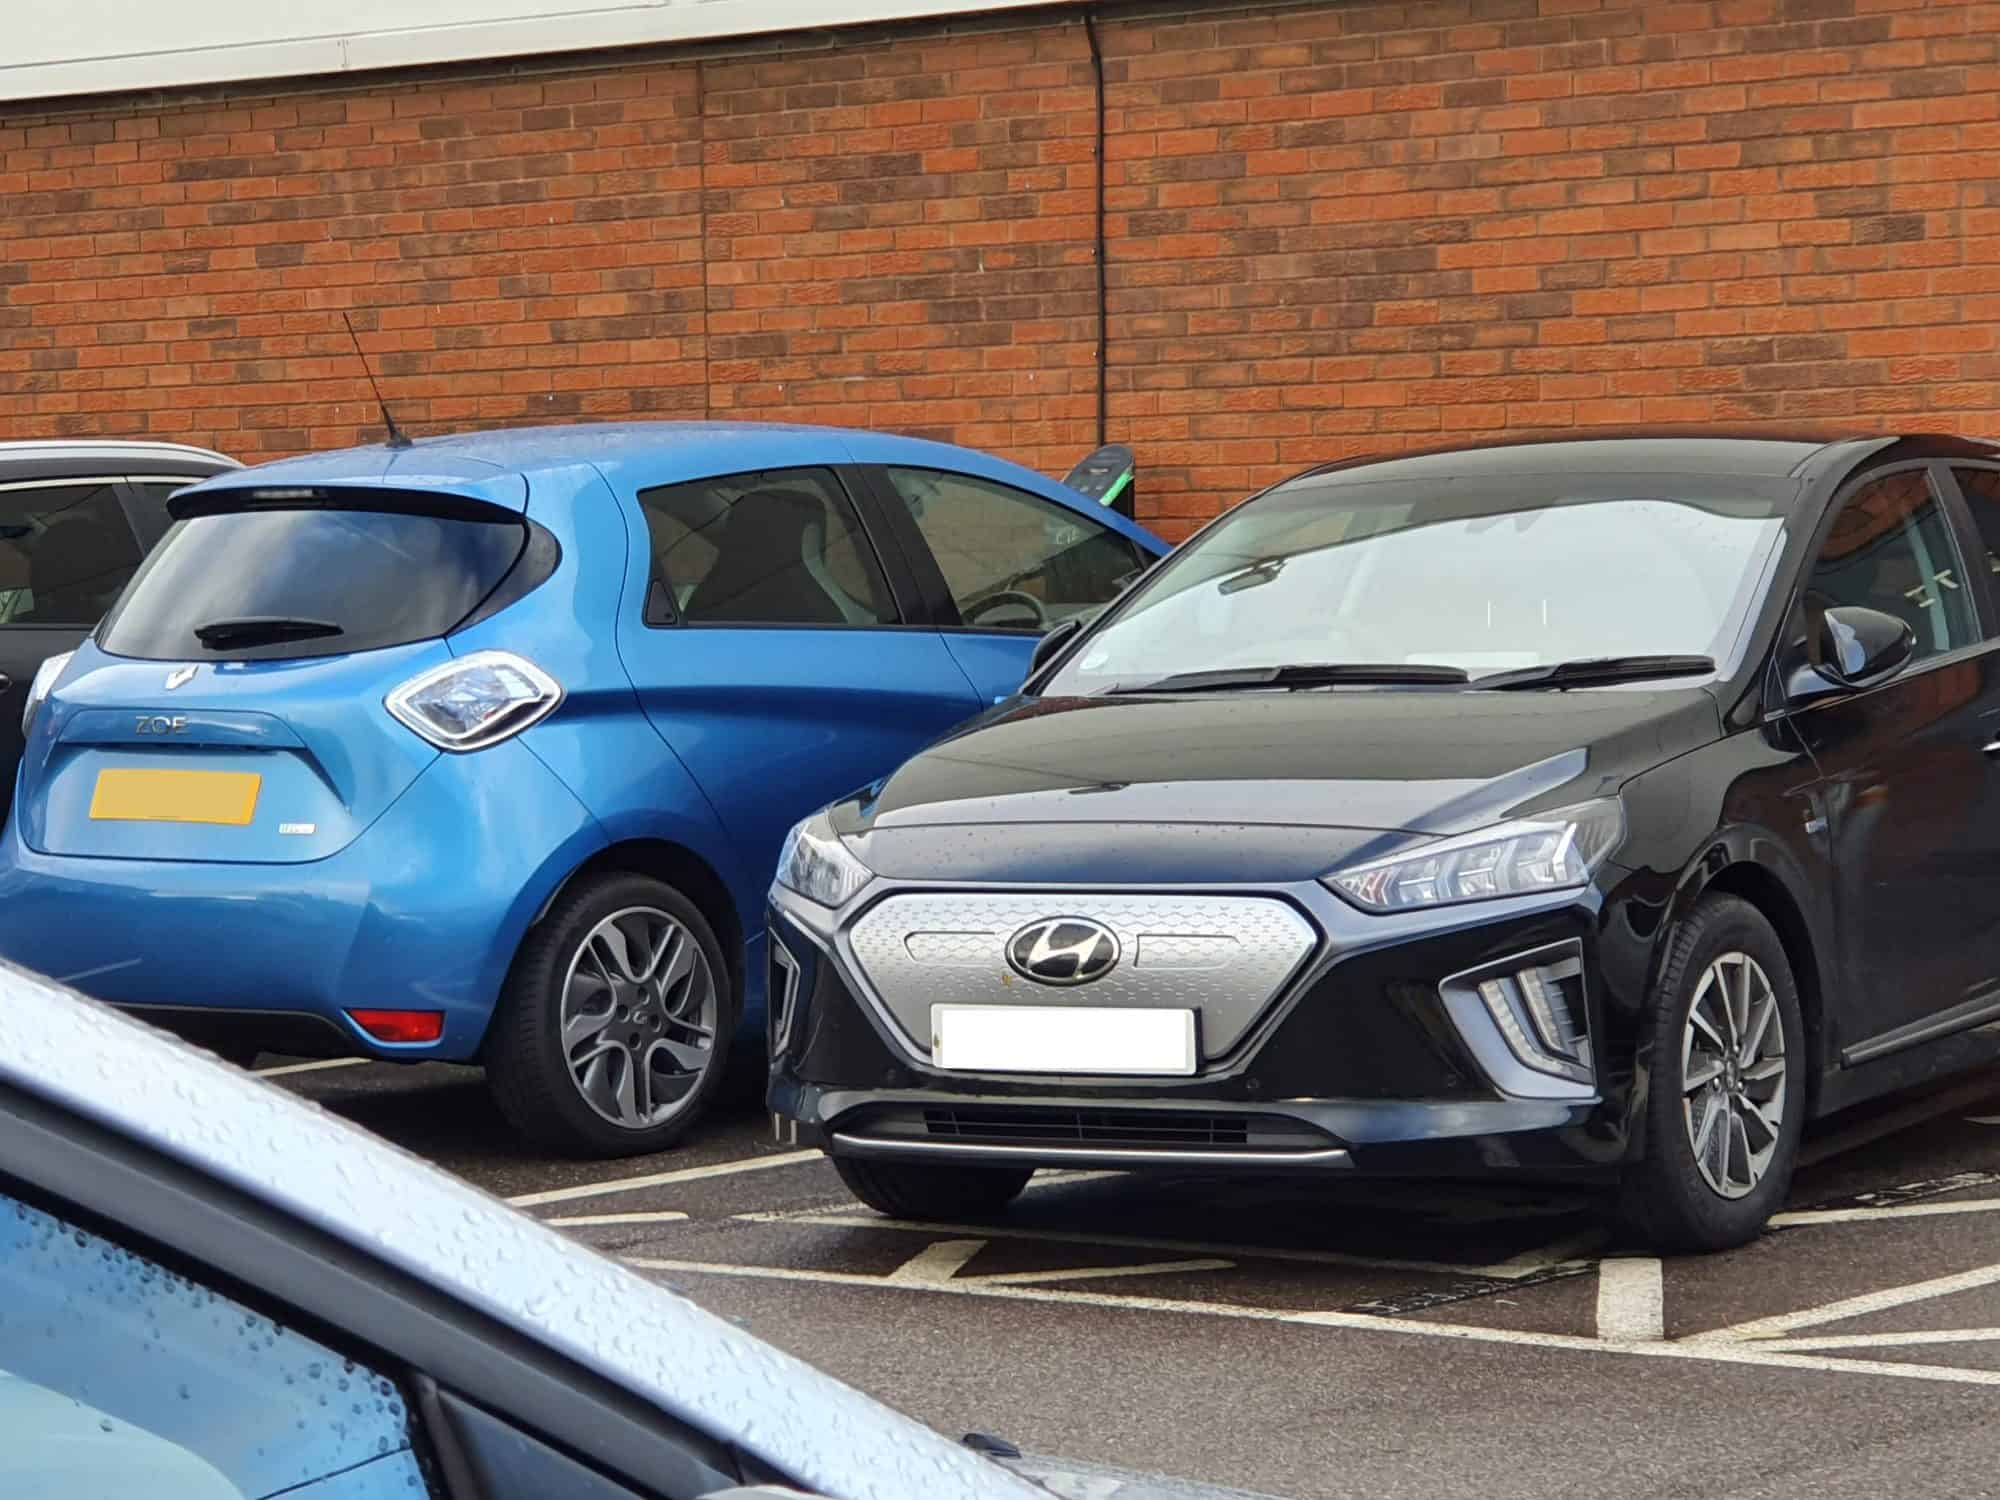 Renault Zoe and Hyundai IONIQ EVs next to each other